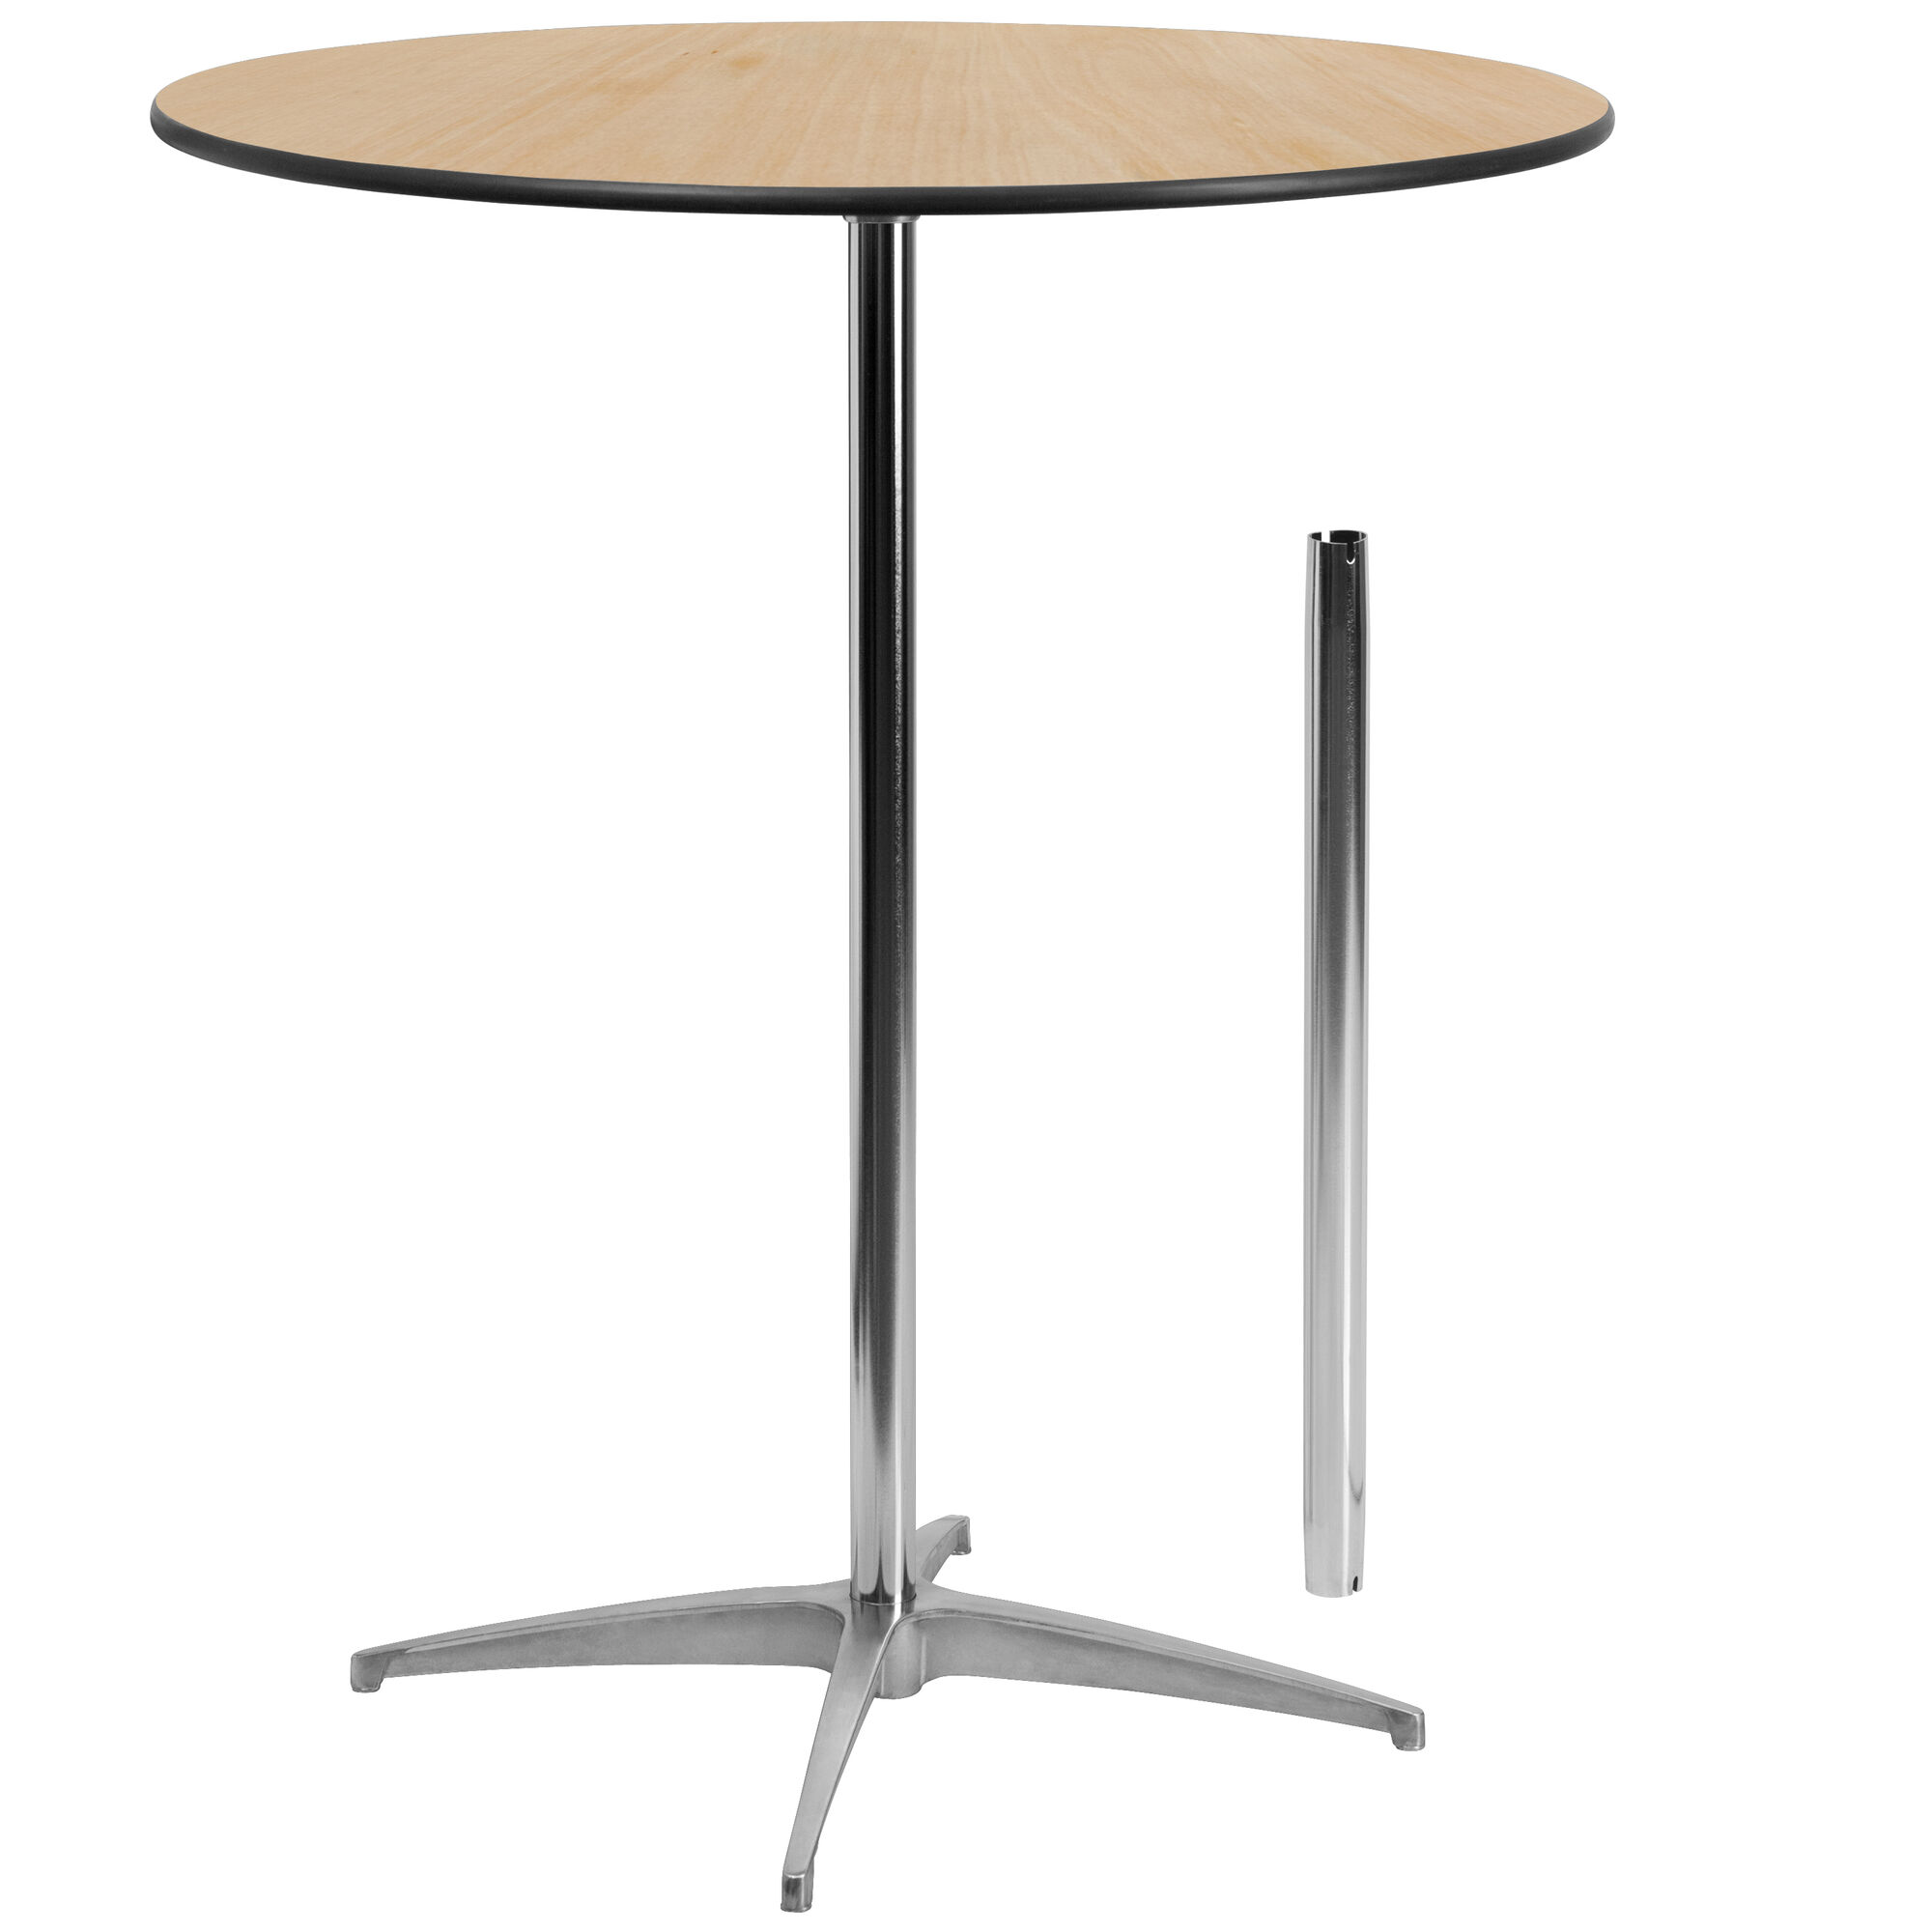 36 Round Wood Tail Table With 30 And 42 Columns